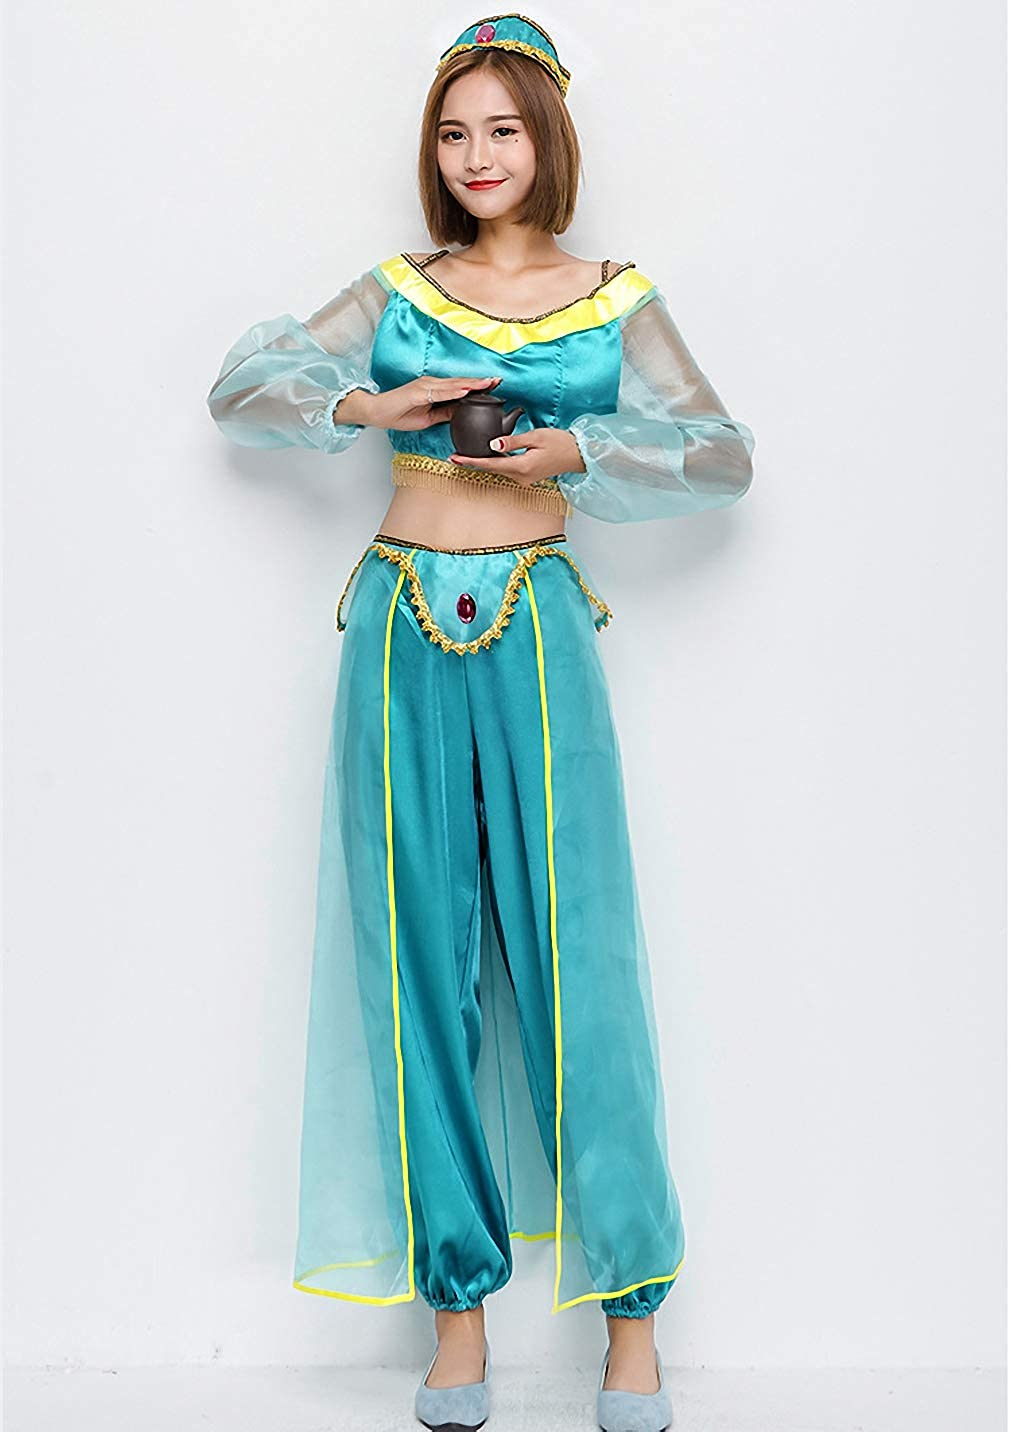 71a737eb5a28 Amazon.com: mewow Halloween Costume Women's Sexy Arab Princess Belly Dance  Show Pants Dancer Blue Outfits: Clothing